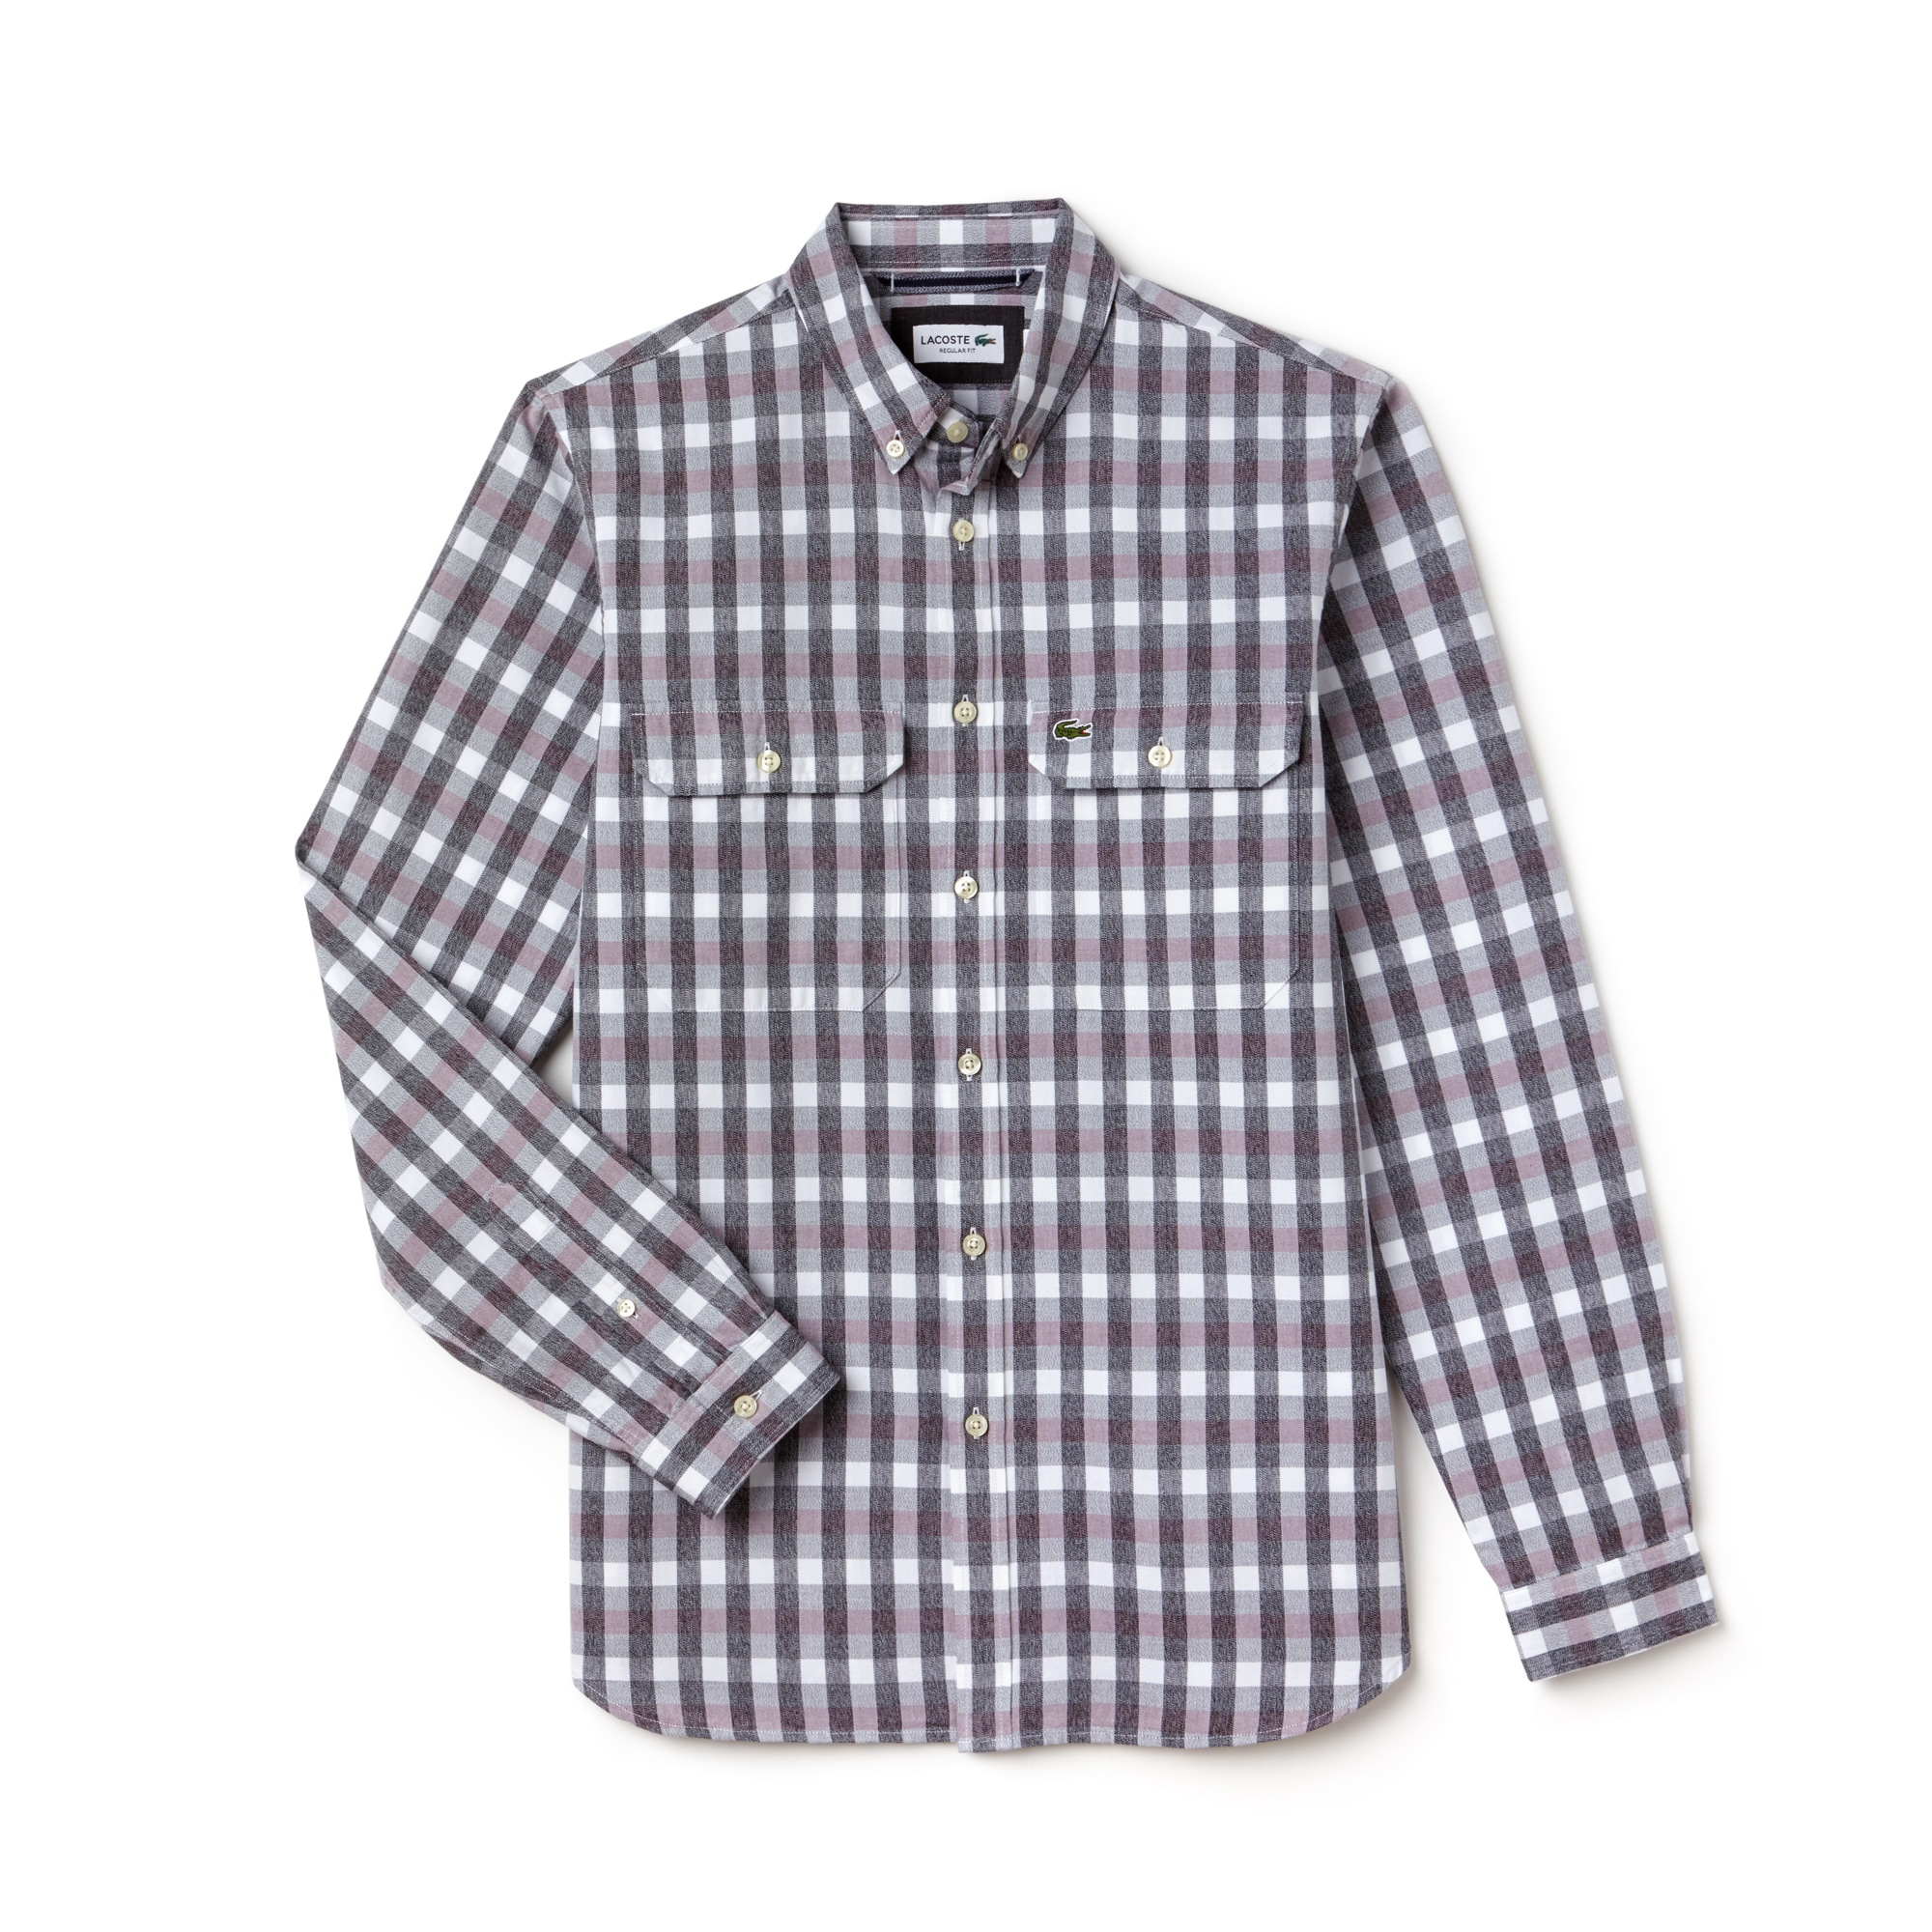 Men's Regular Fit Oxford Cotton Check Shirt With Pockets